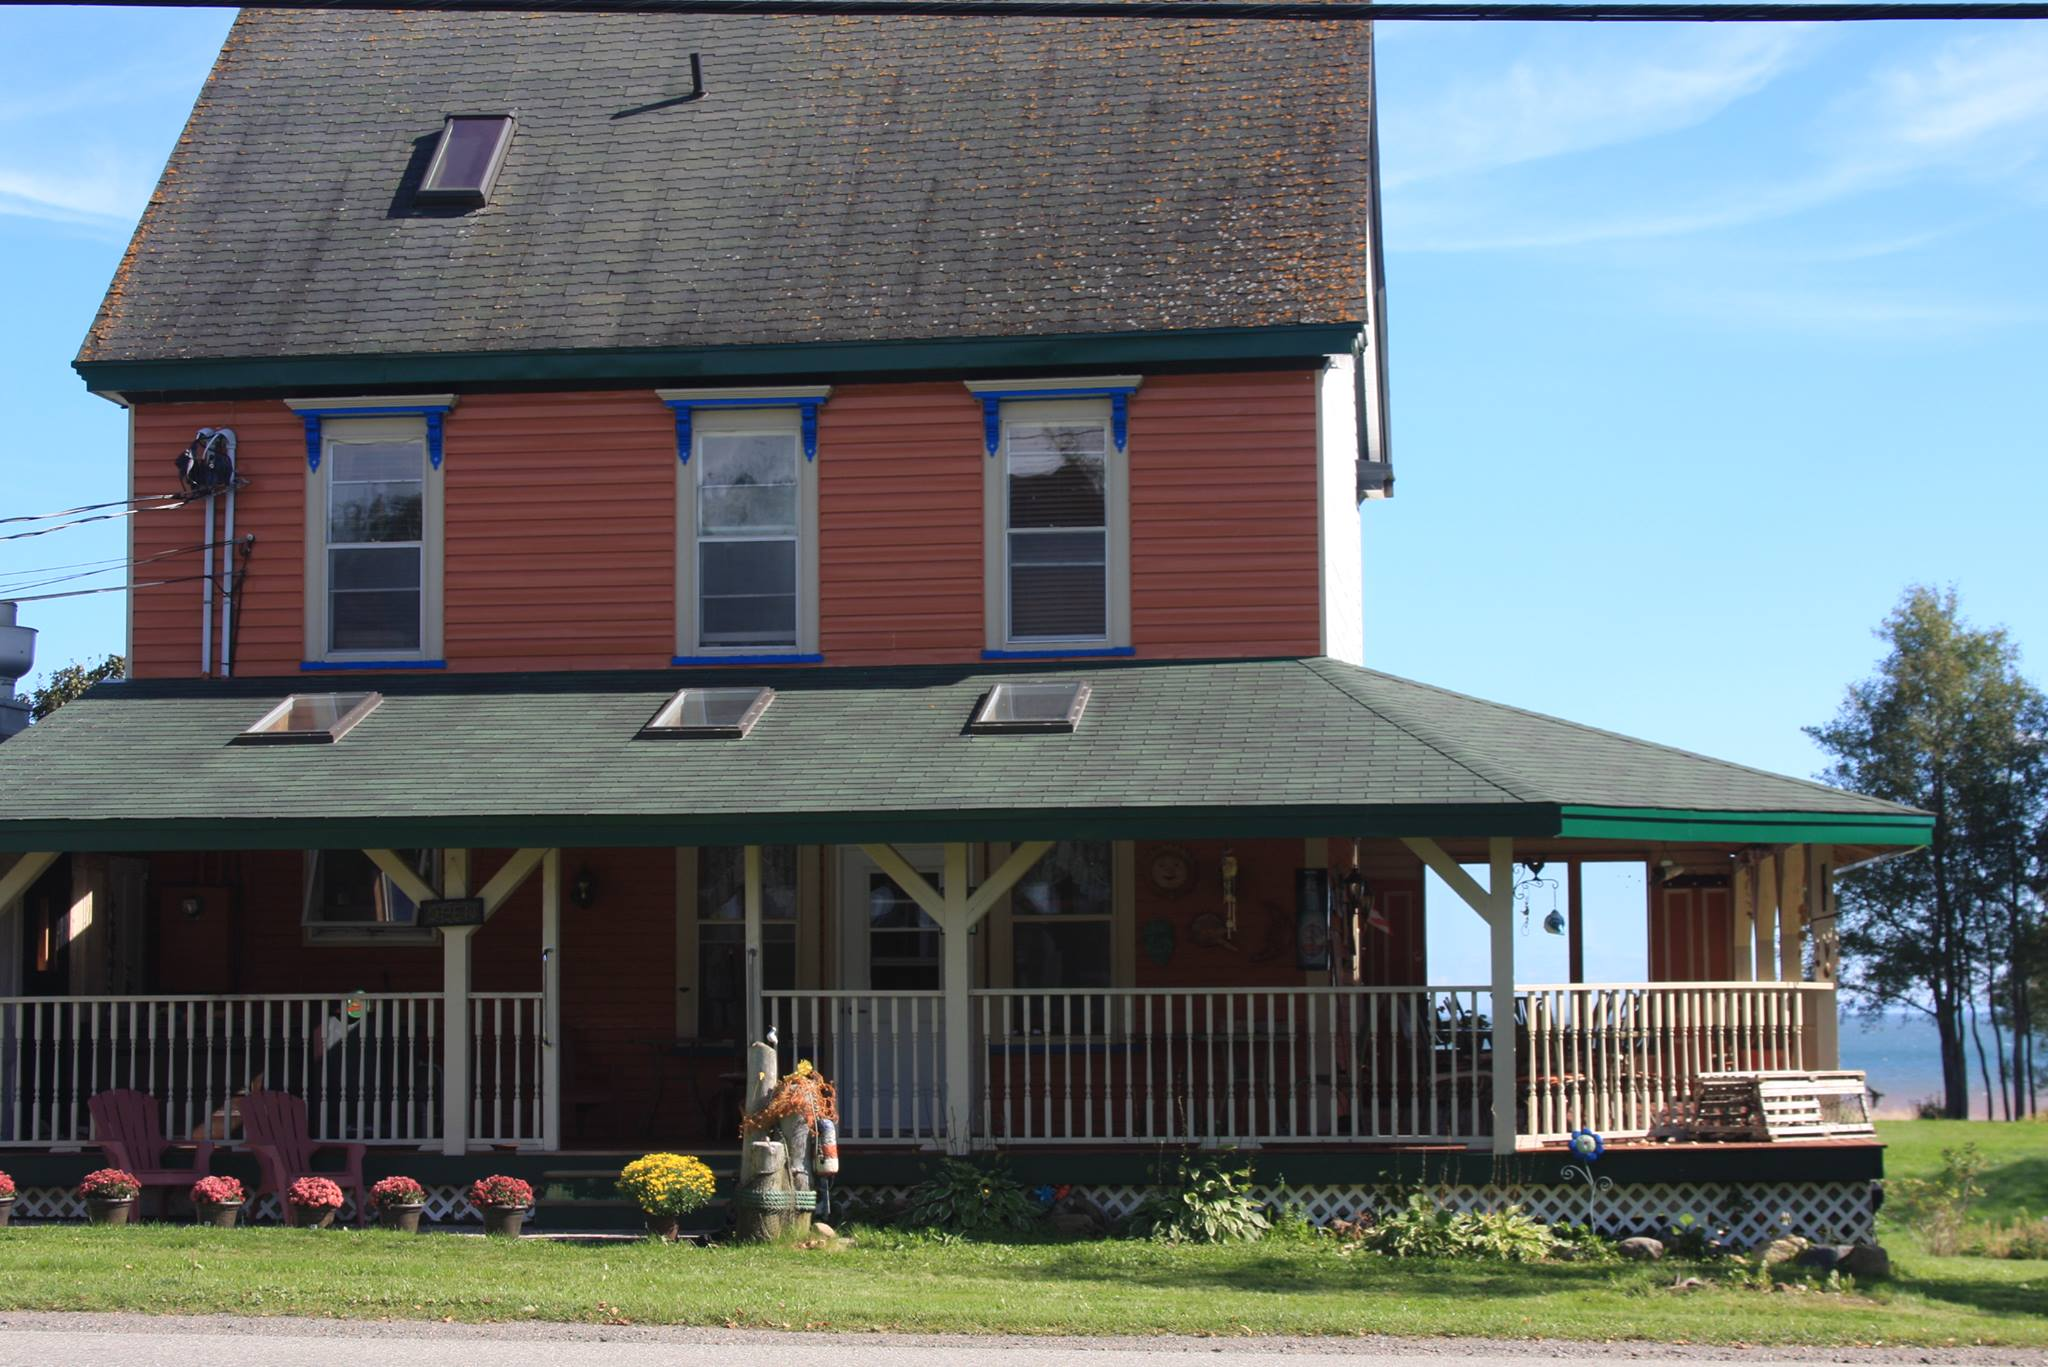 A small house in the background at Salmon River B&B.